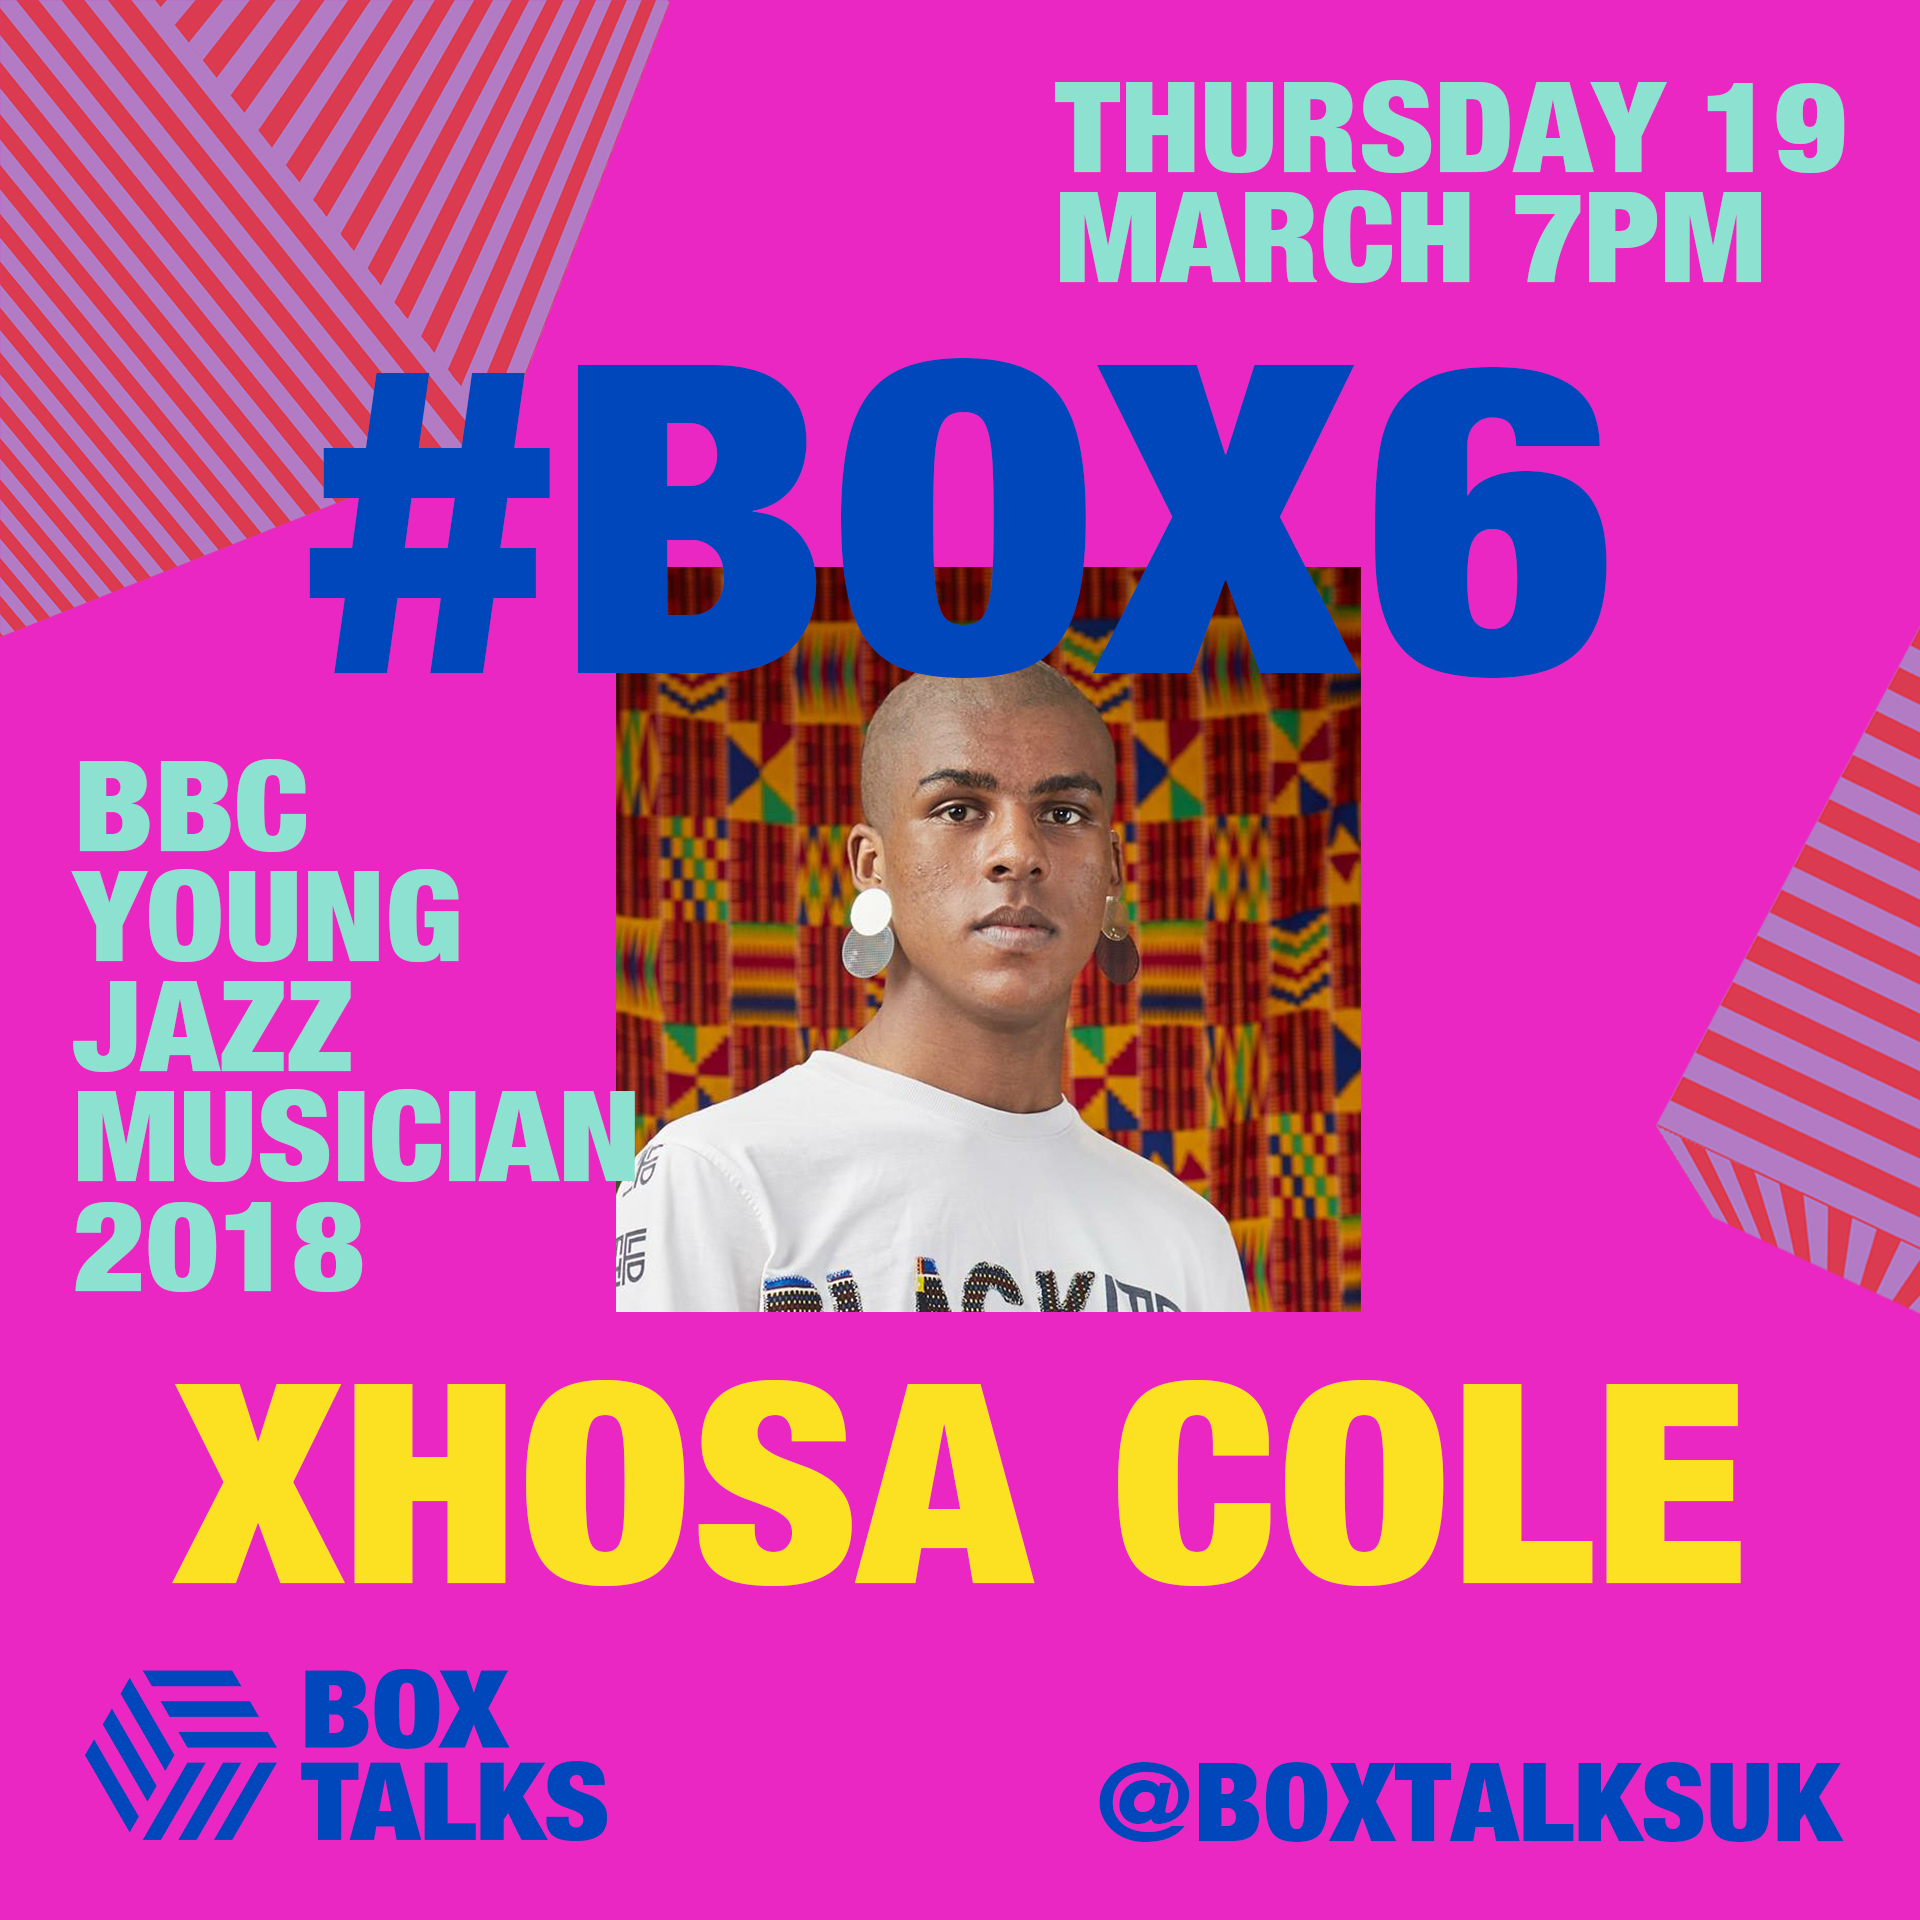 BOX TALKS #6 - Xhosa Cole: BBC Young Jazz Musician of the Year 2018